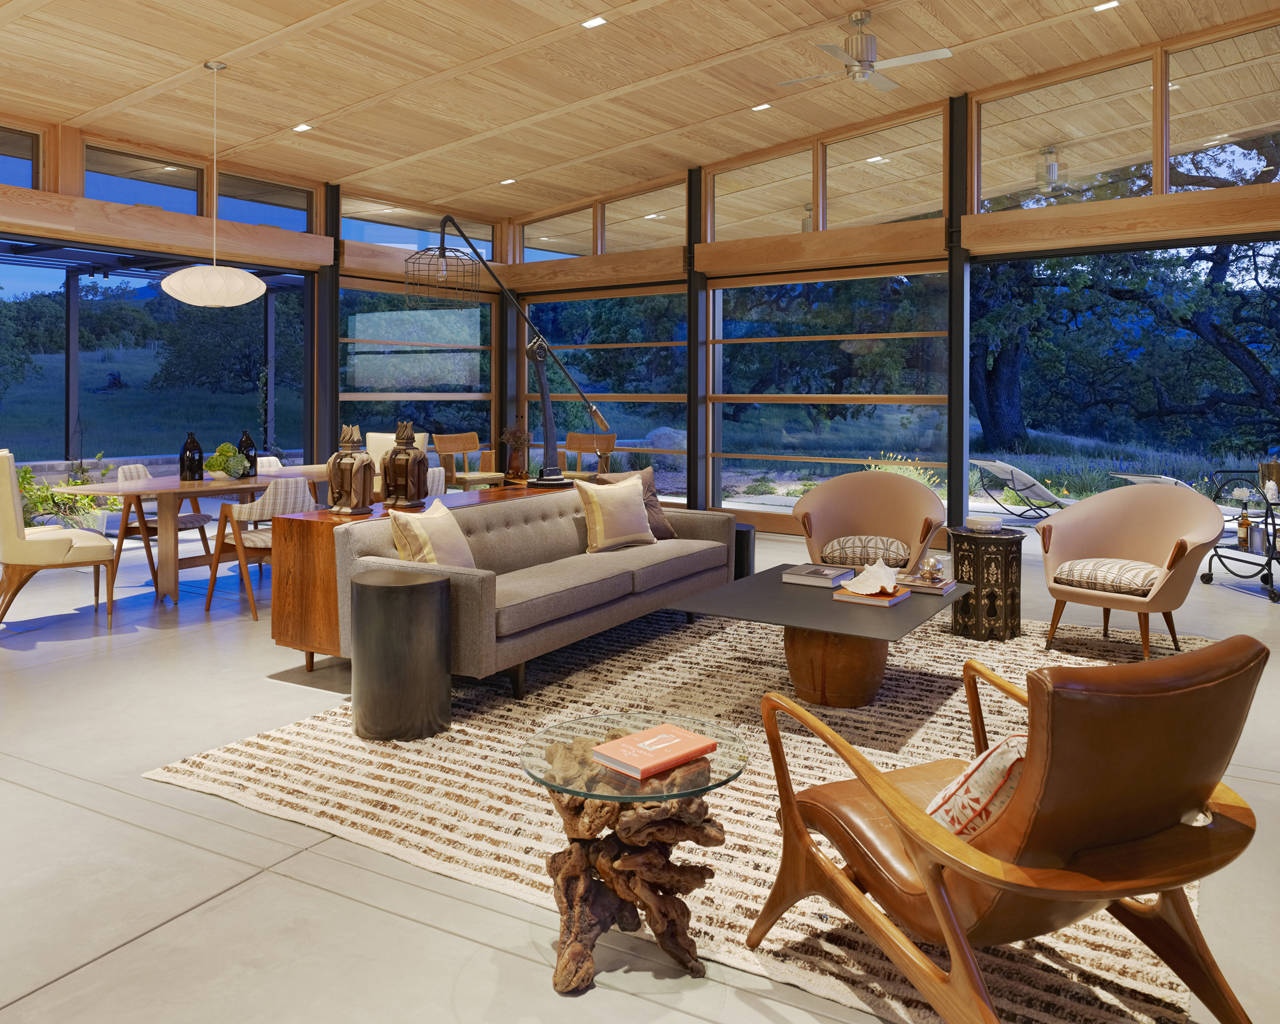 Living, Dining Space, Caterpillar House in Carmel, California by Feldman Architecture